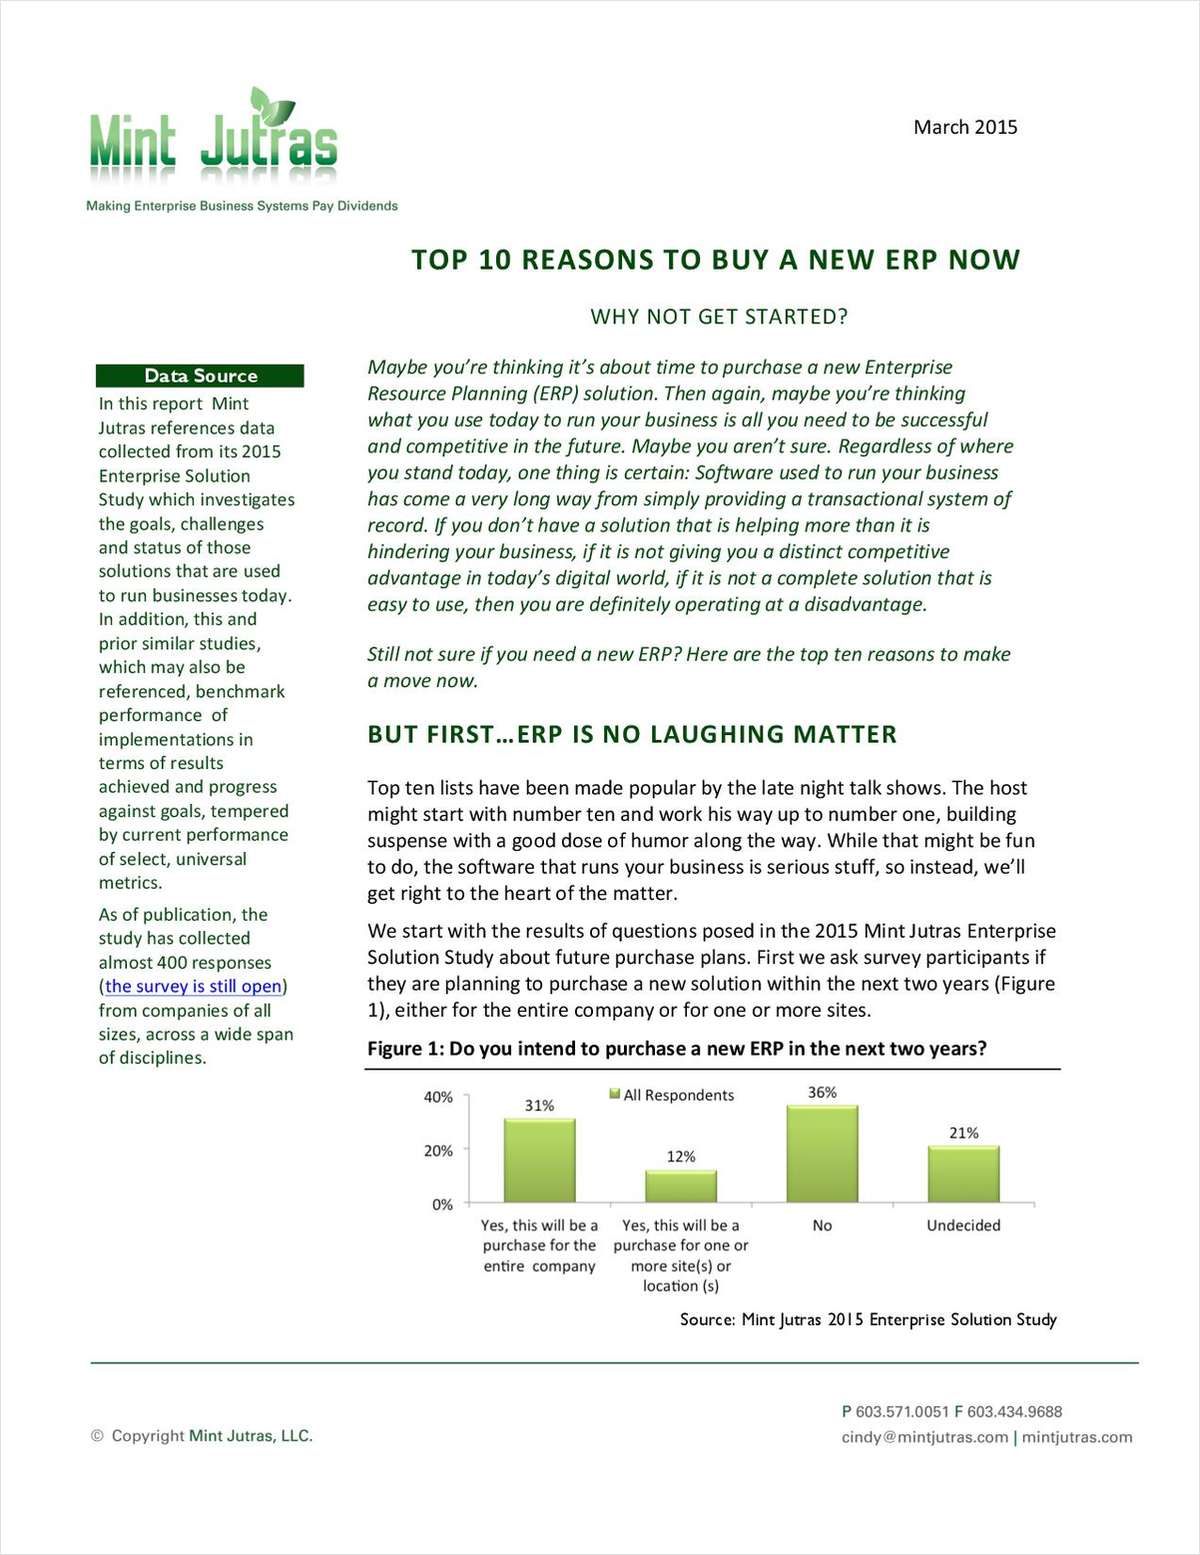 Top 10 Reasons to Buy a New ERP Now